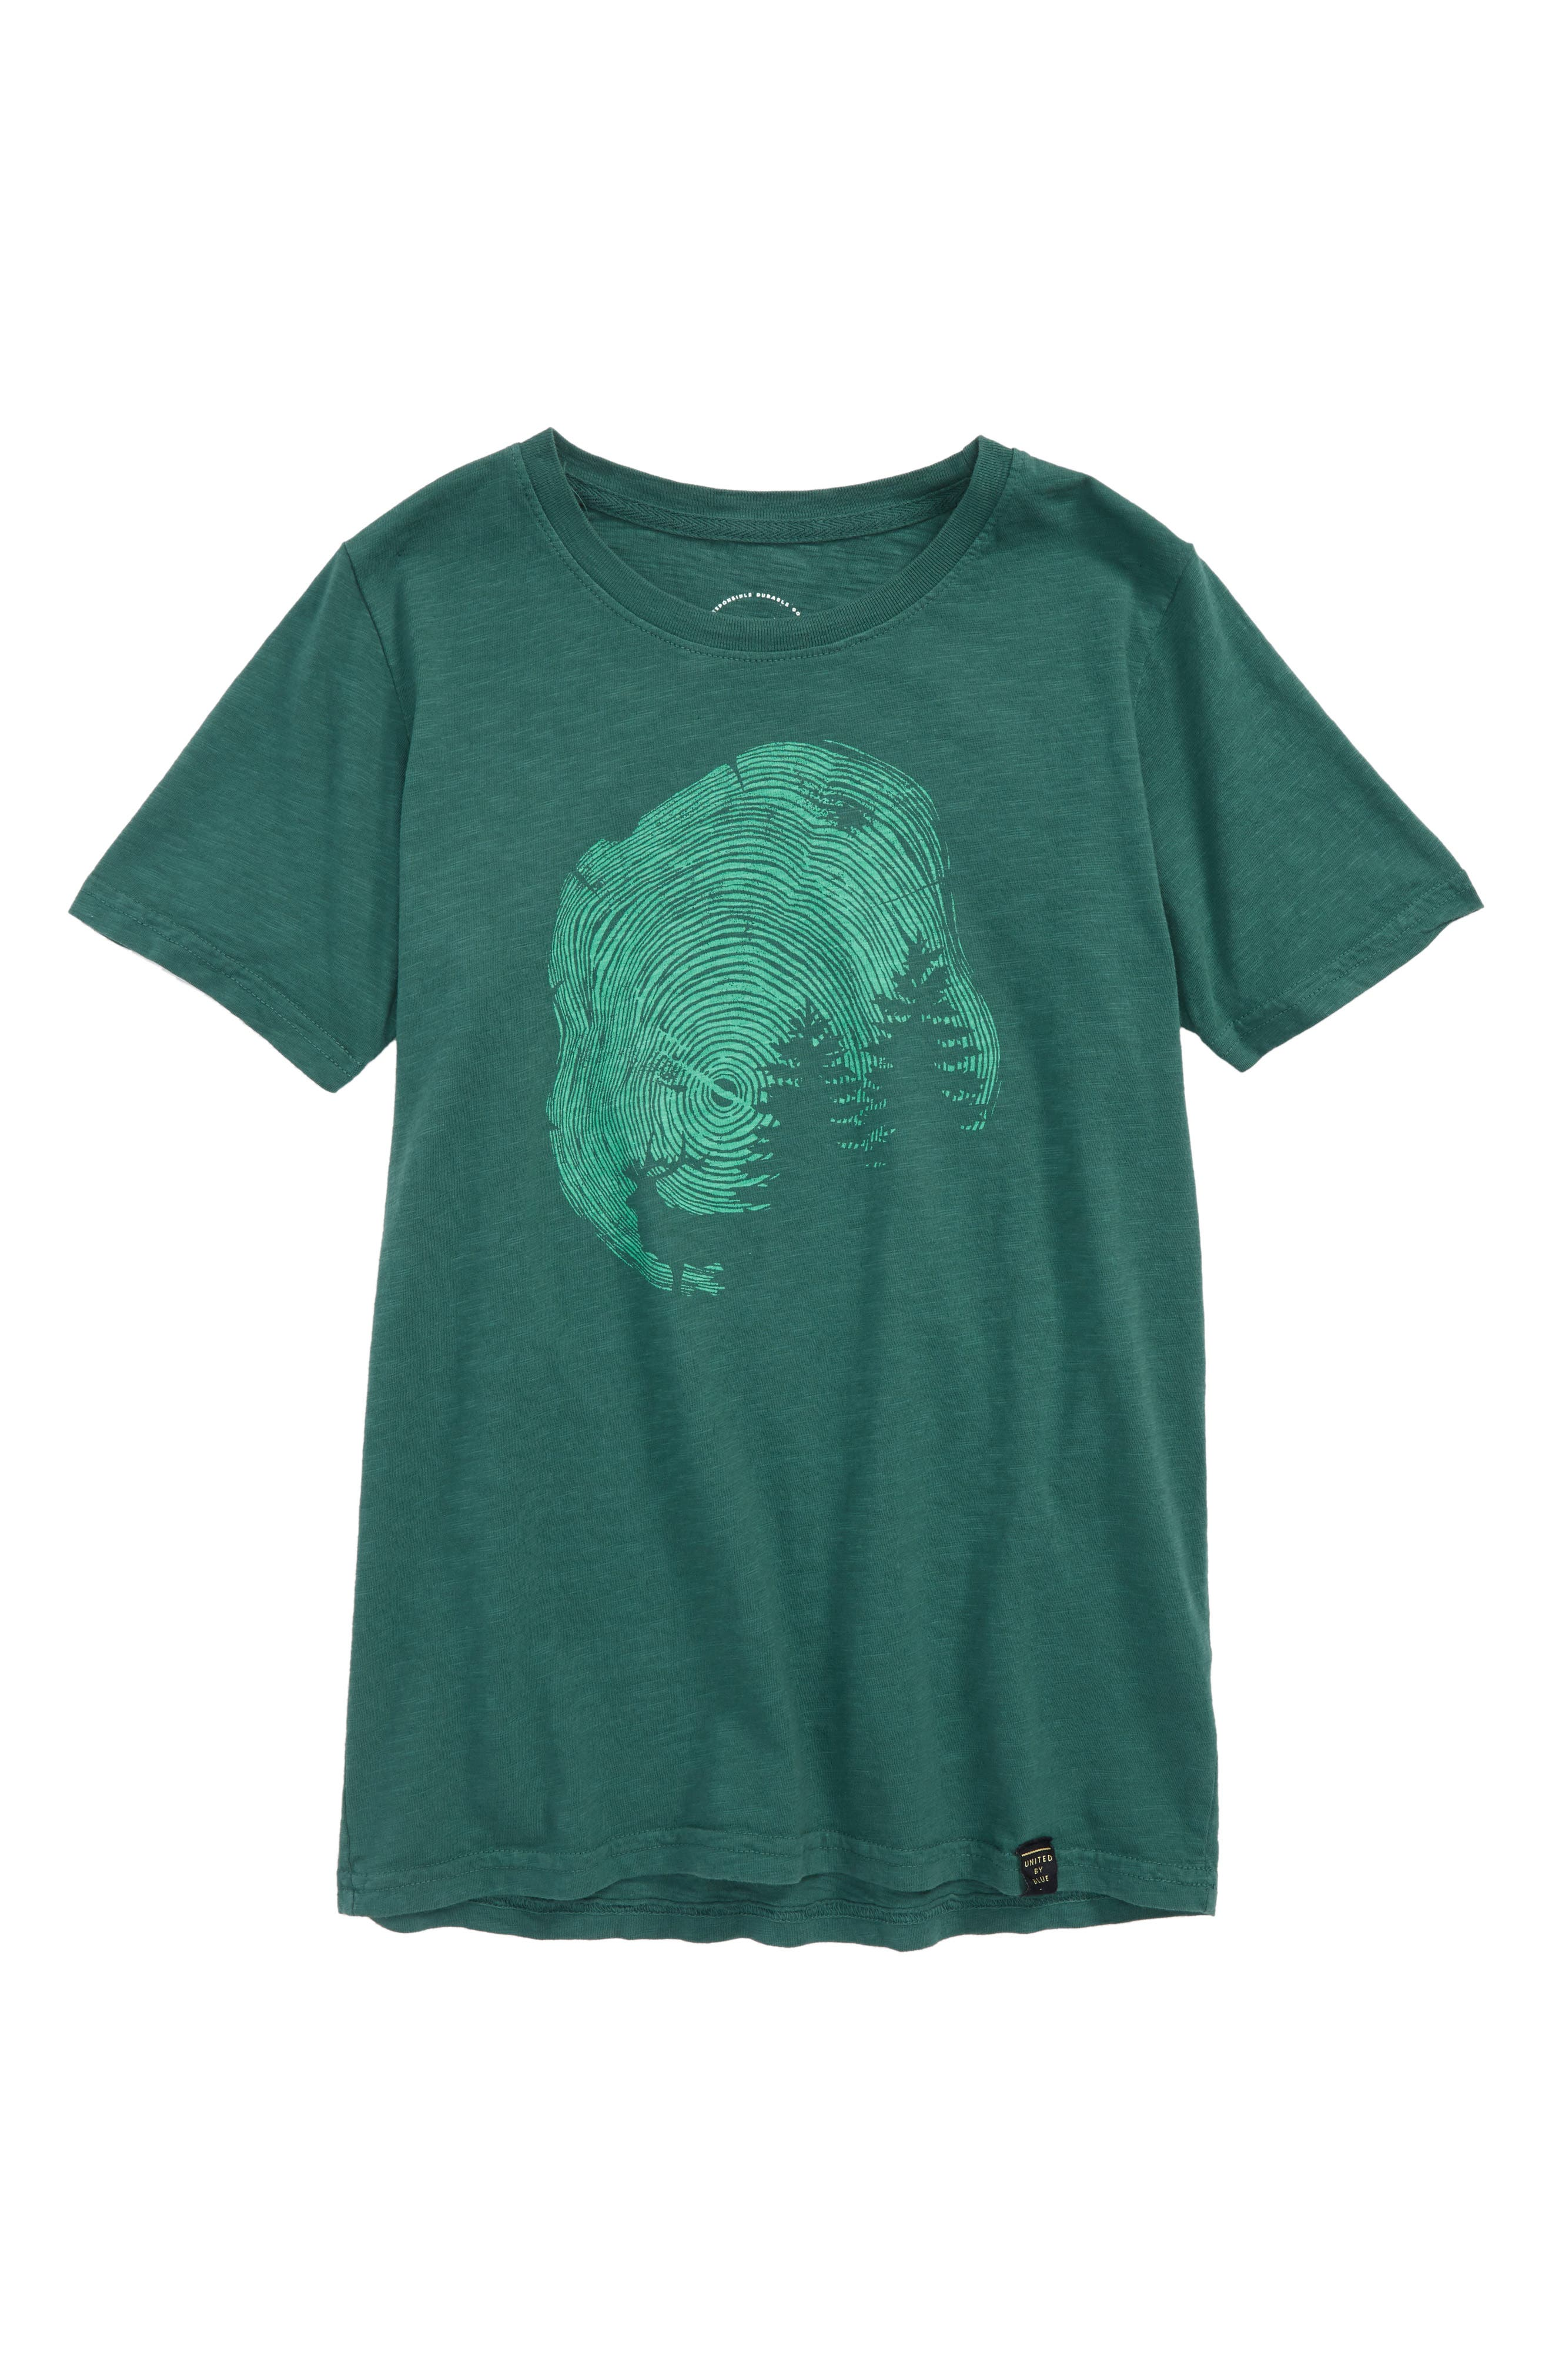 Gorham Organic Cotton T-Shirt,                             Main thumbnail 1, color,                             Teal